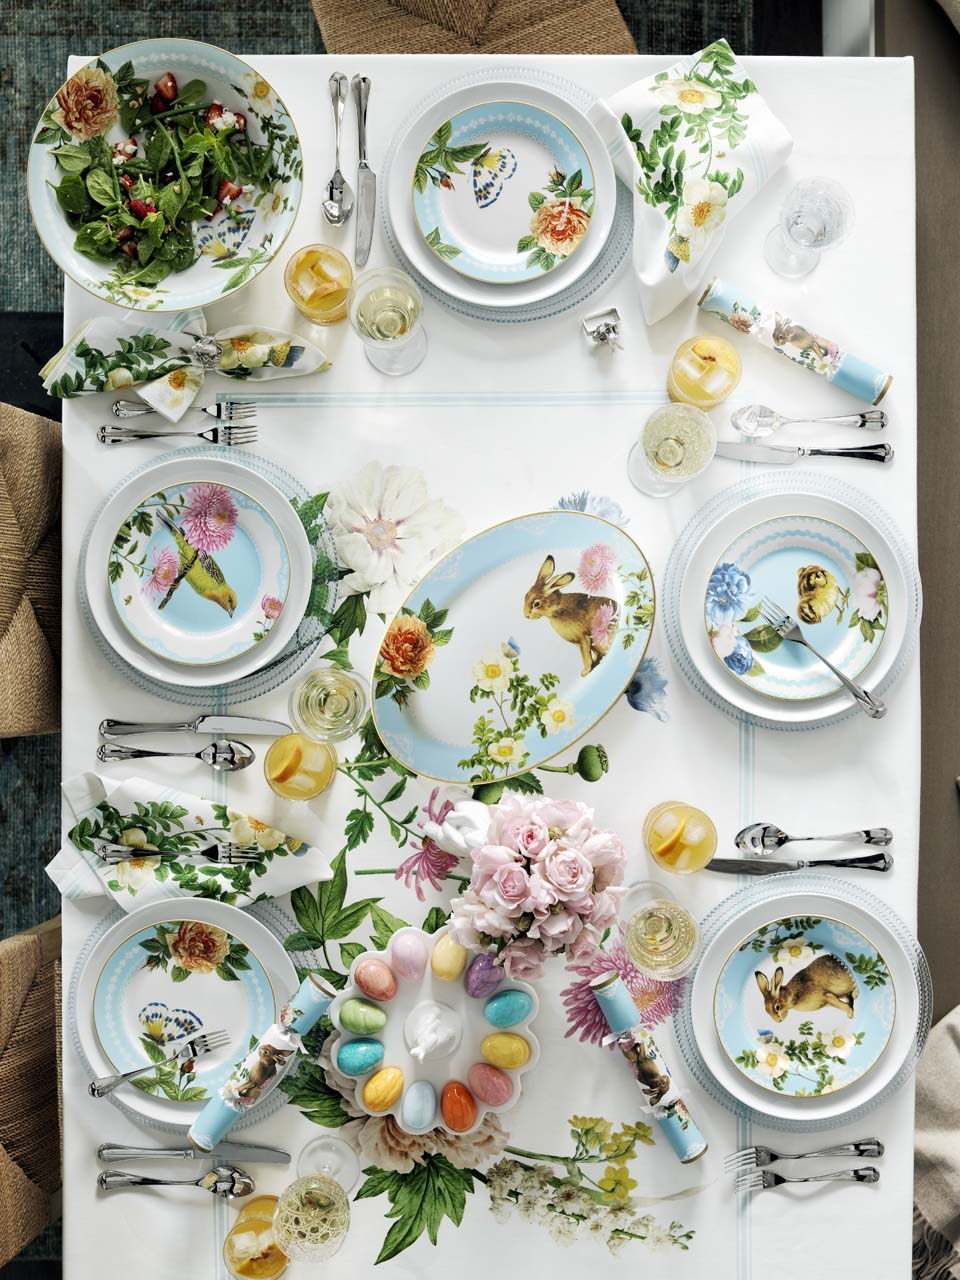 williams sonoma easter tablescape idea. Click to see even more Easter decorating ideas!